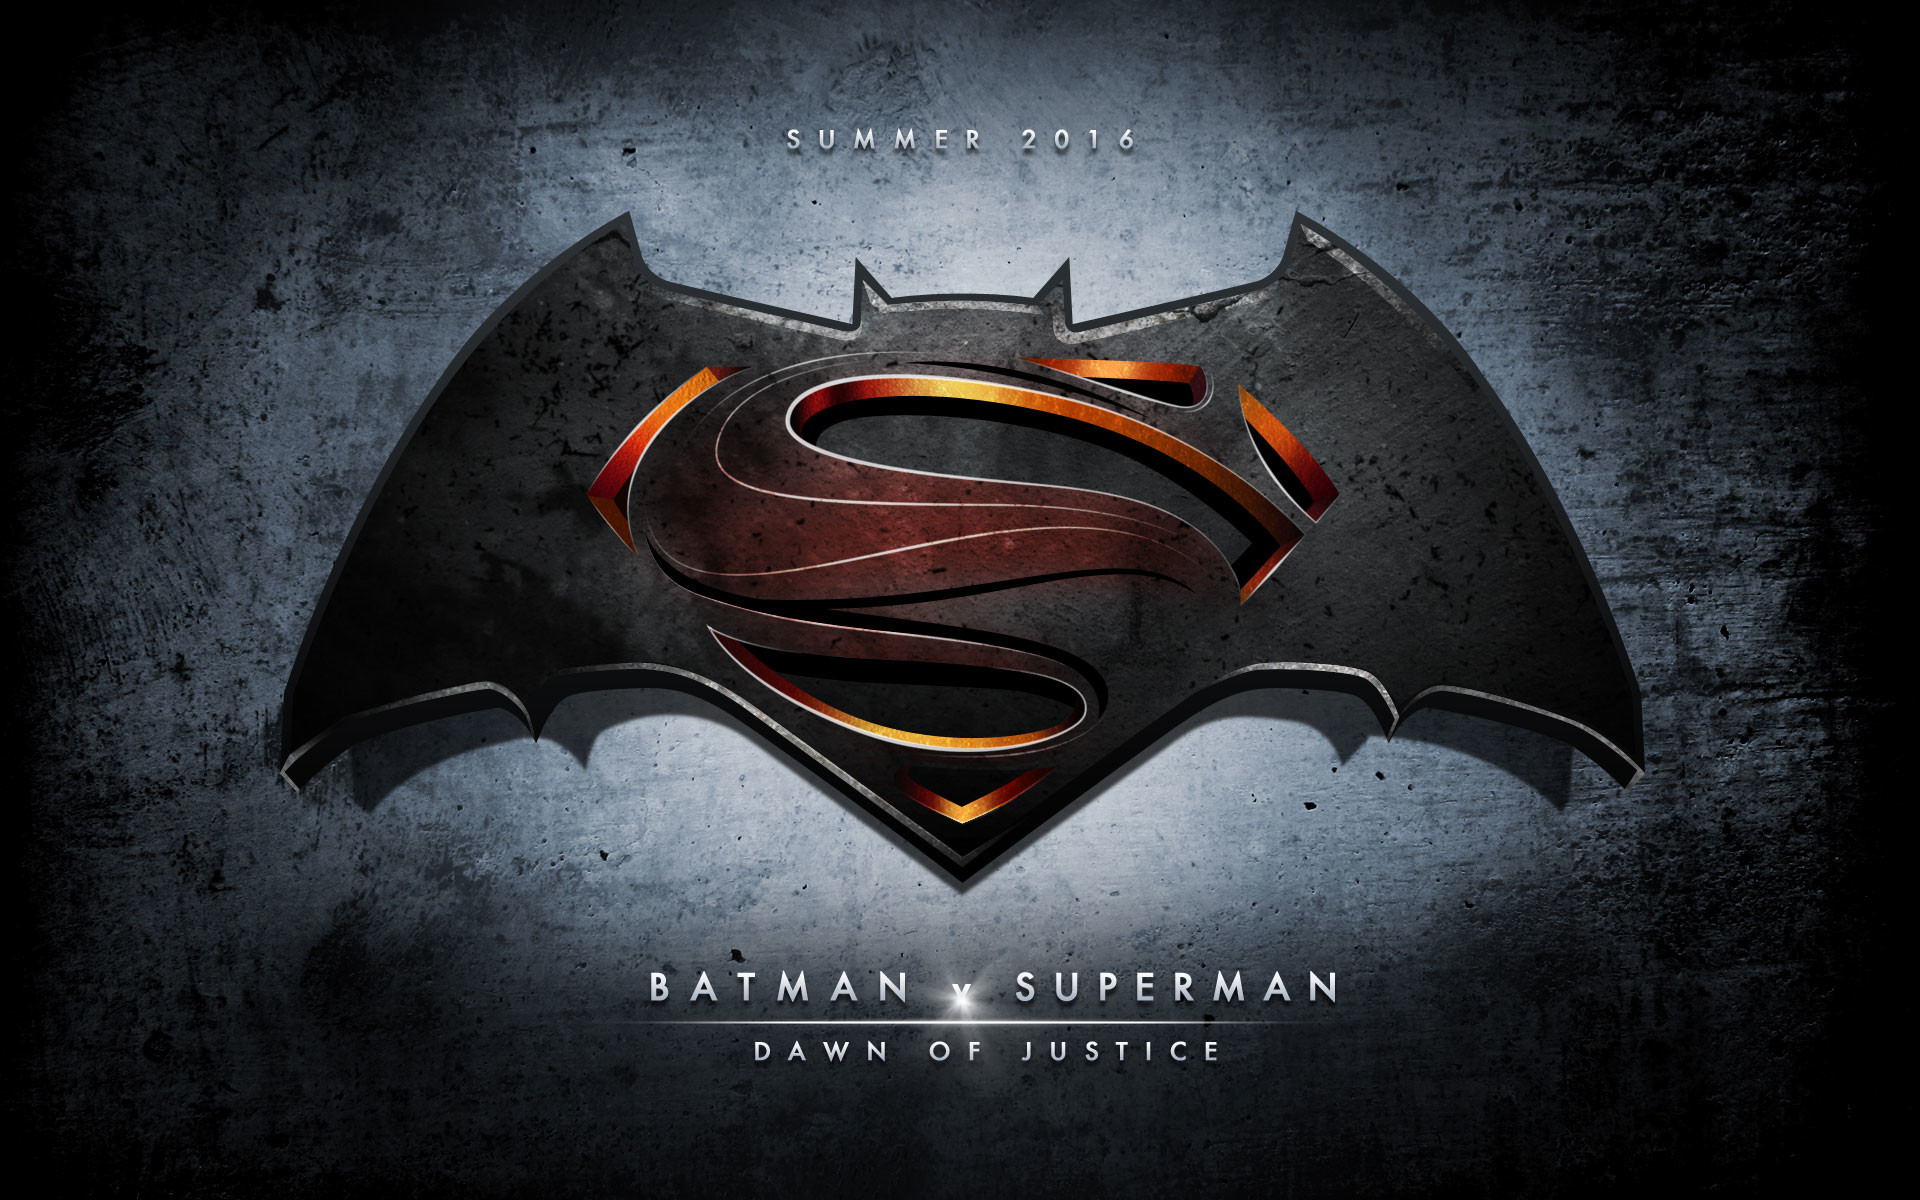 1920x1200 Batman Vs Superman Dawn Of Justice Wallpaper